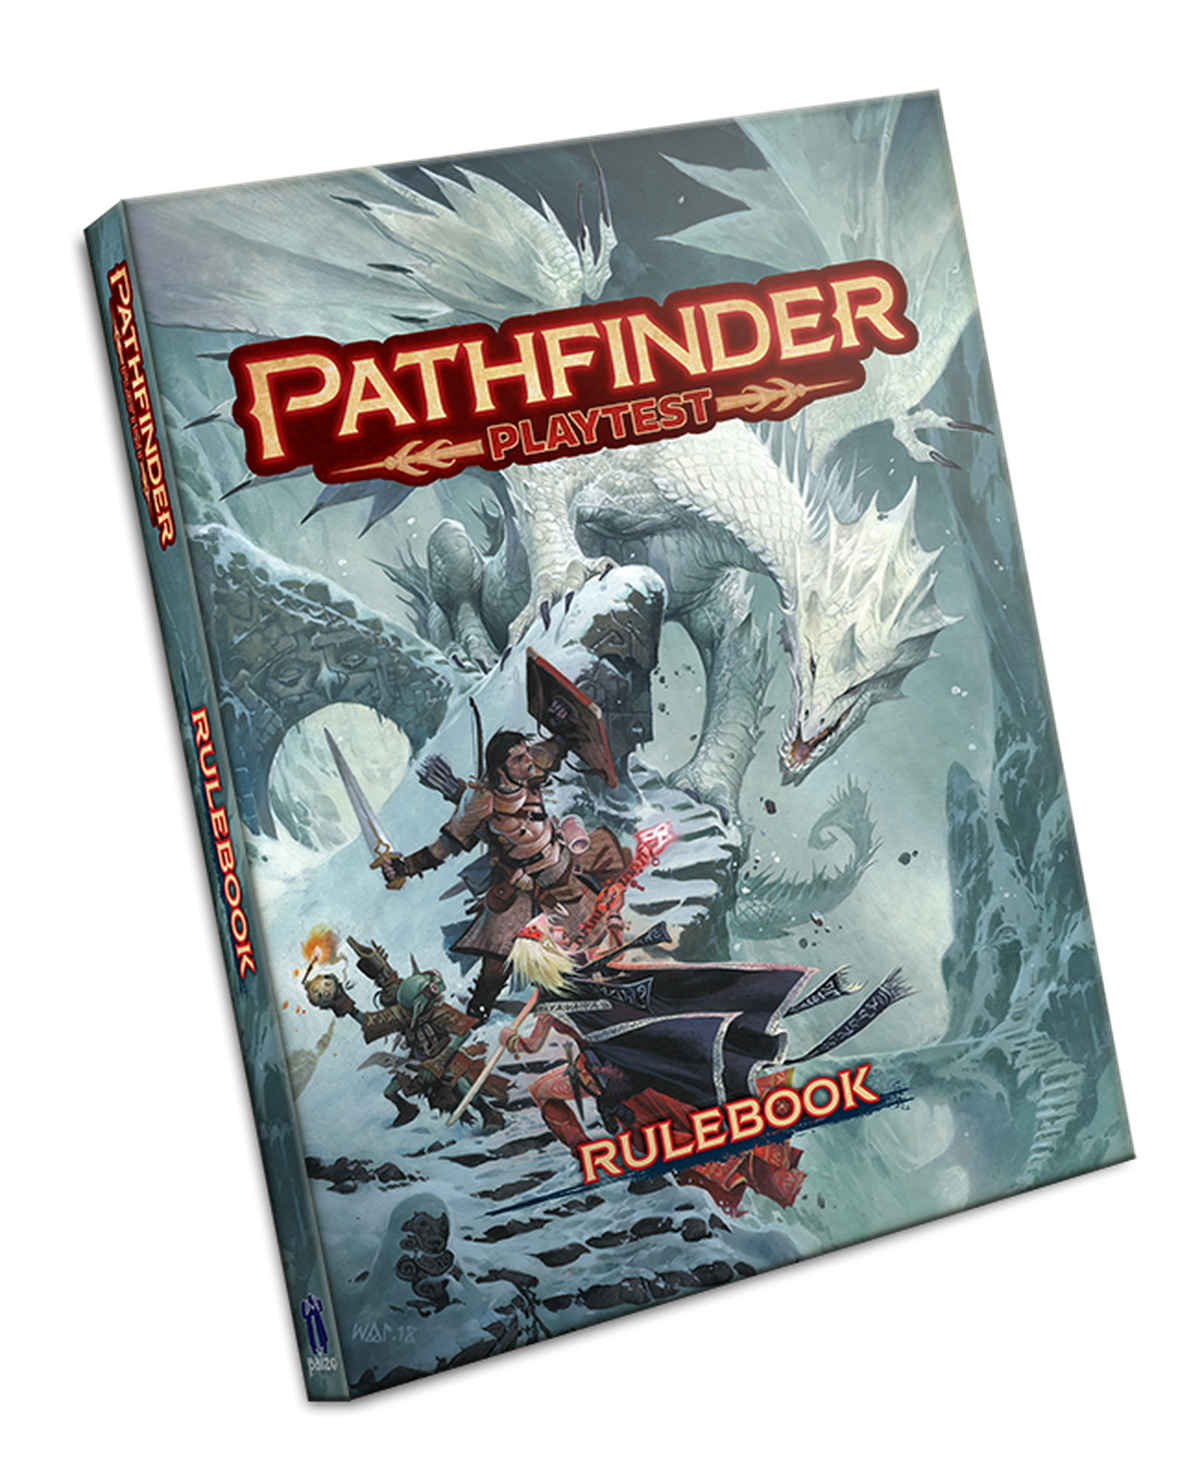 Pathfinder with roots in a decades old strain of dd is launching a mock up of the pathfinder playtest cover fandeluxe Gallery